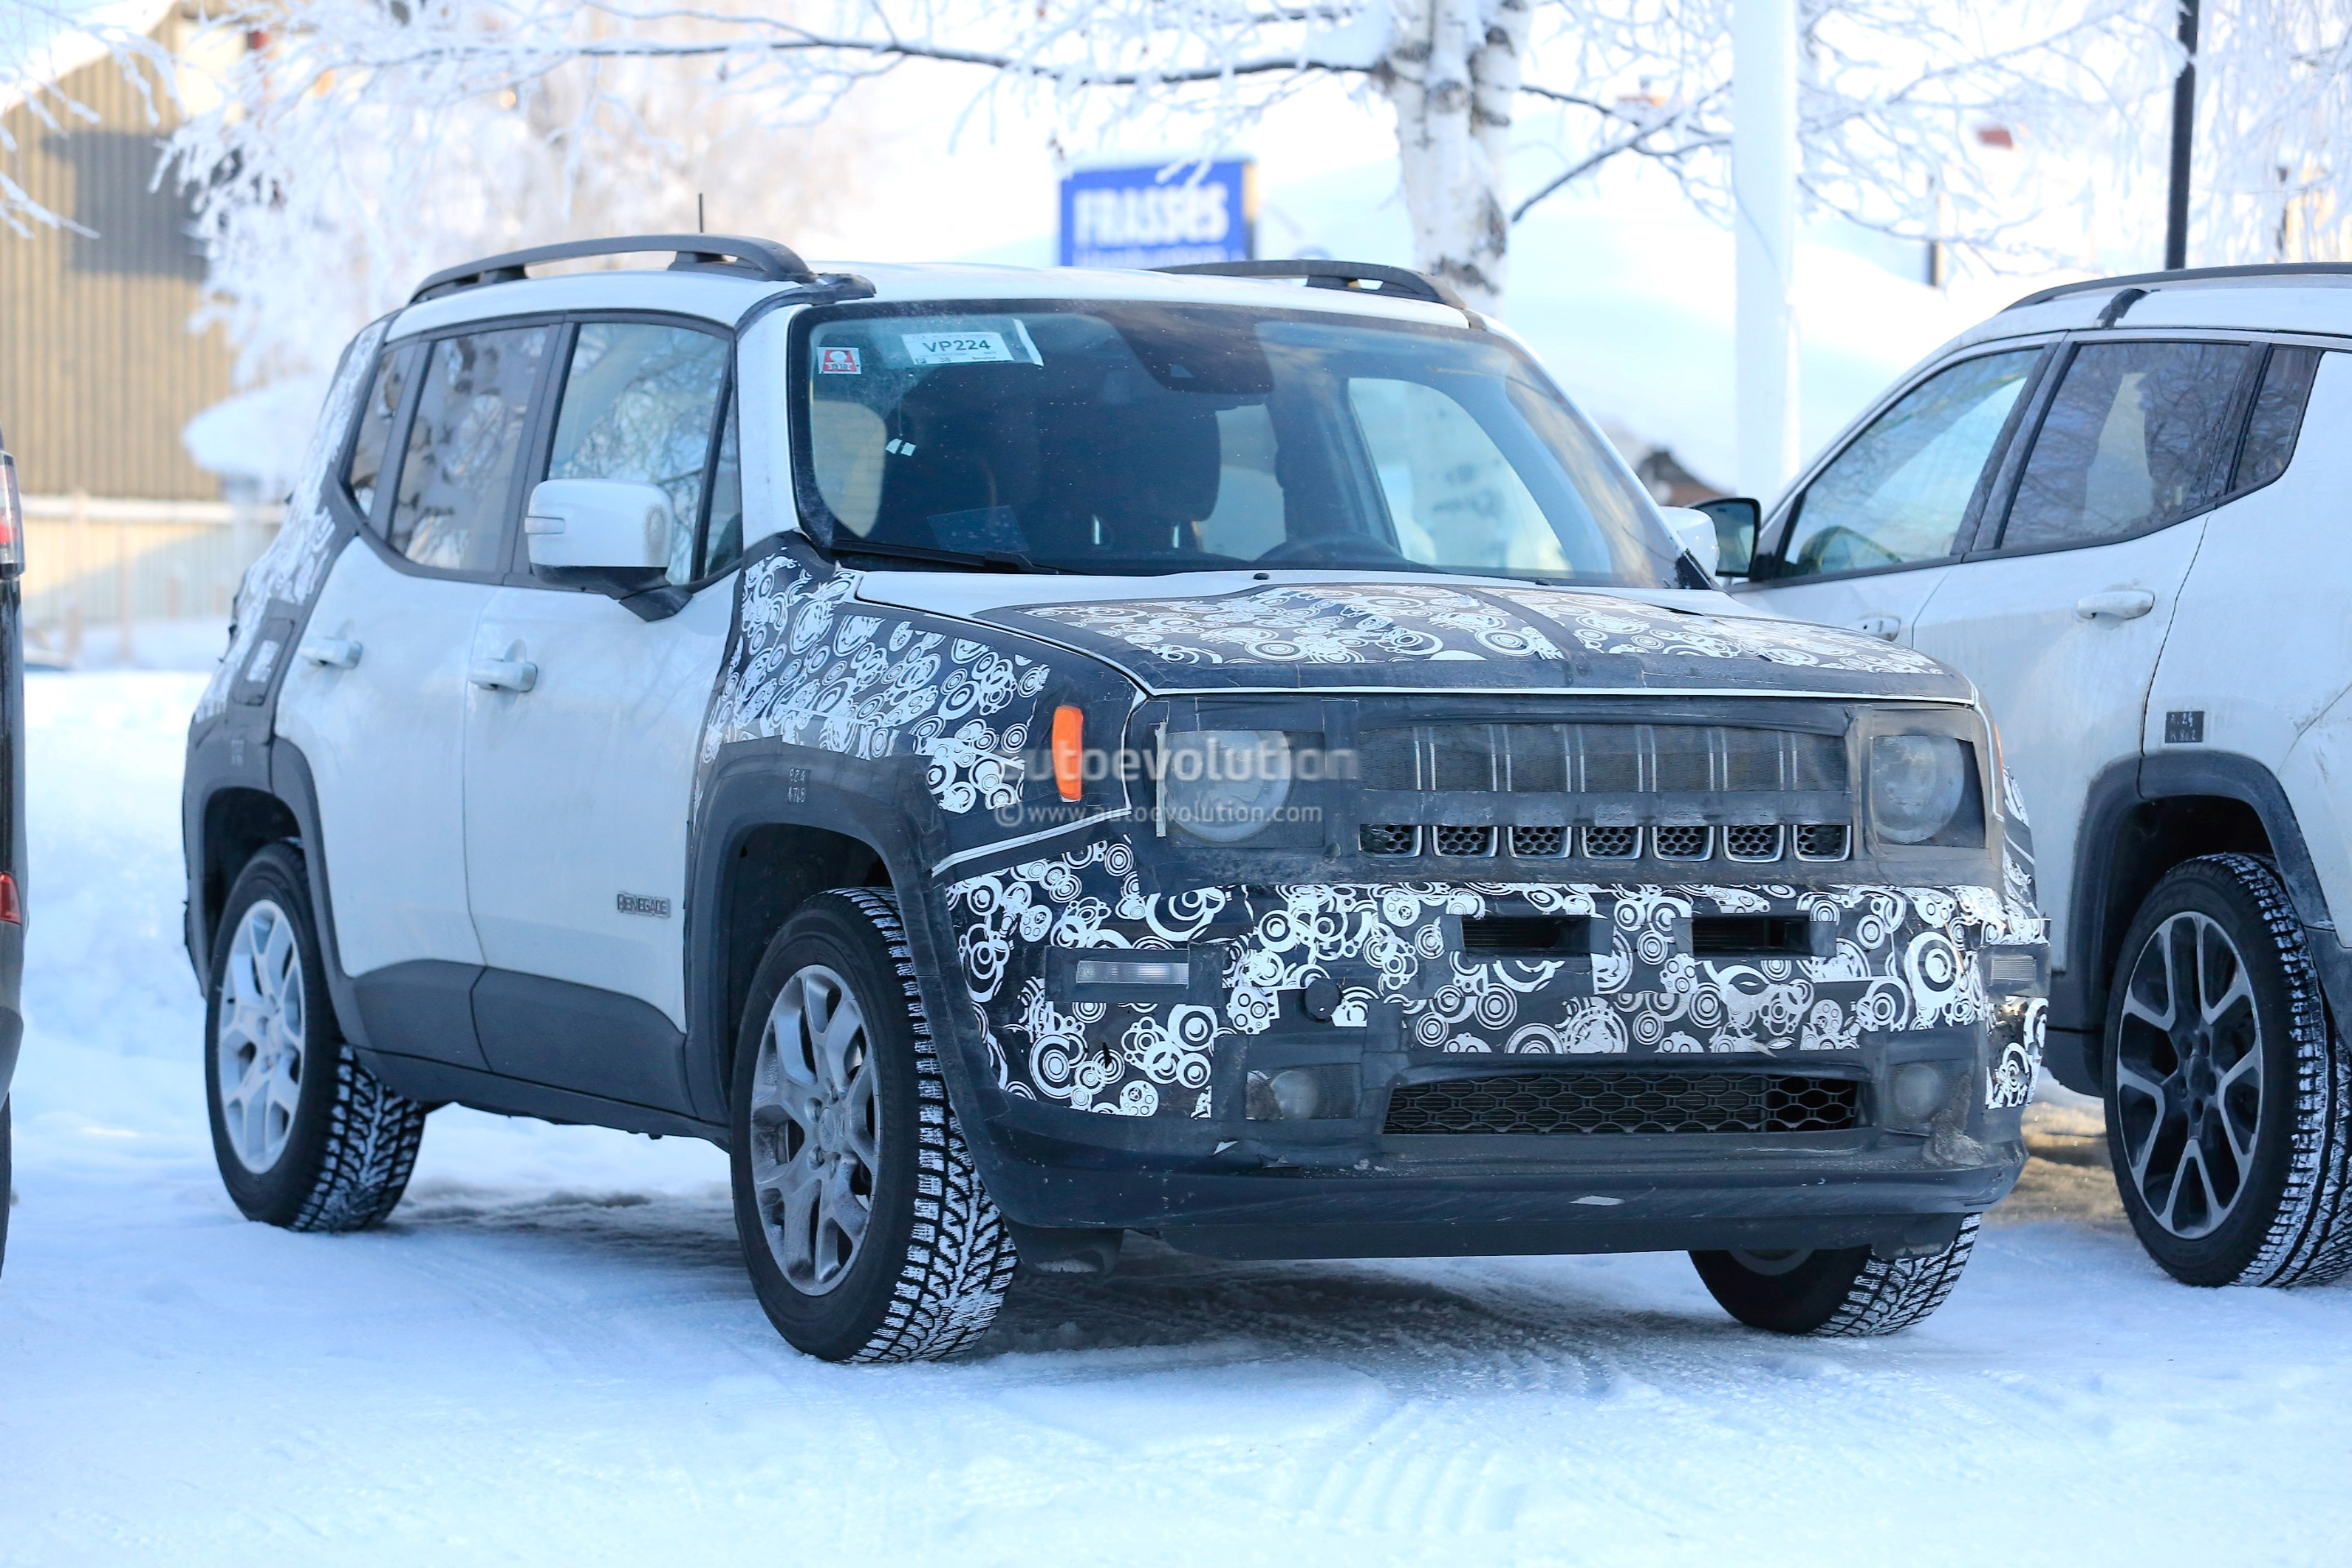 2019 Jeep Renegade Validation Prototype Shows Off New Fascia Design